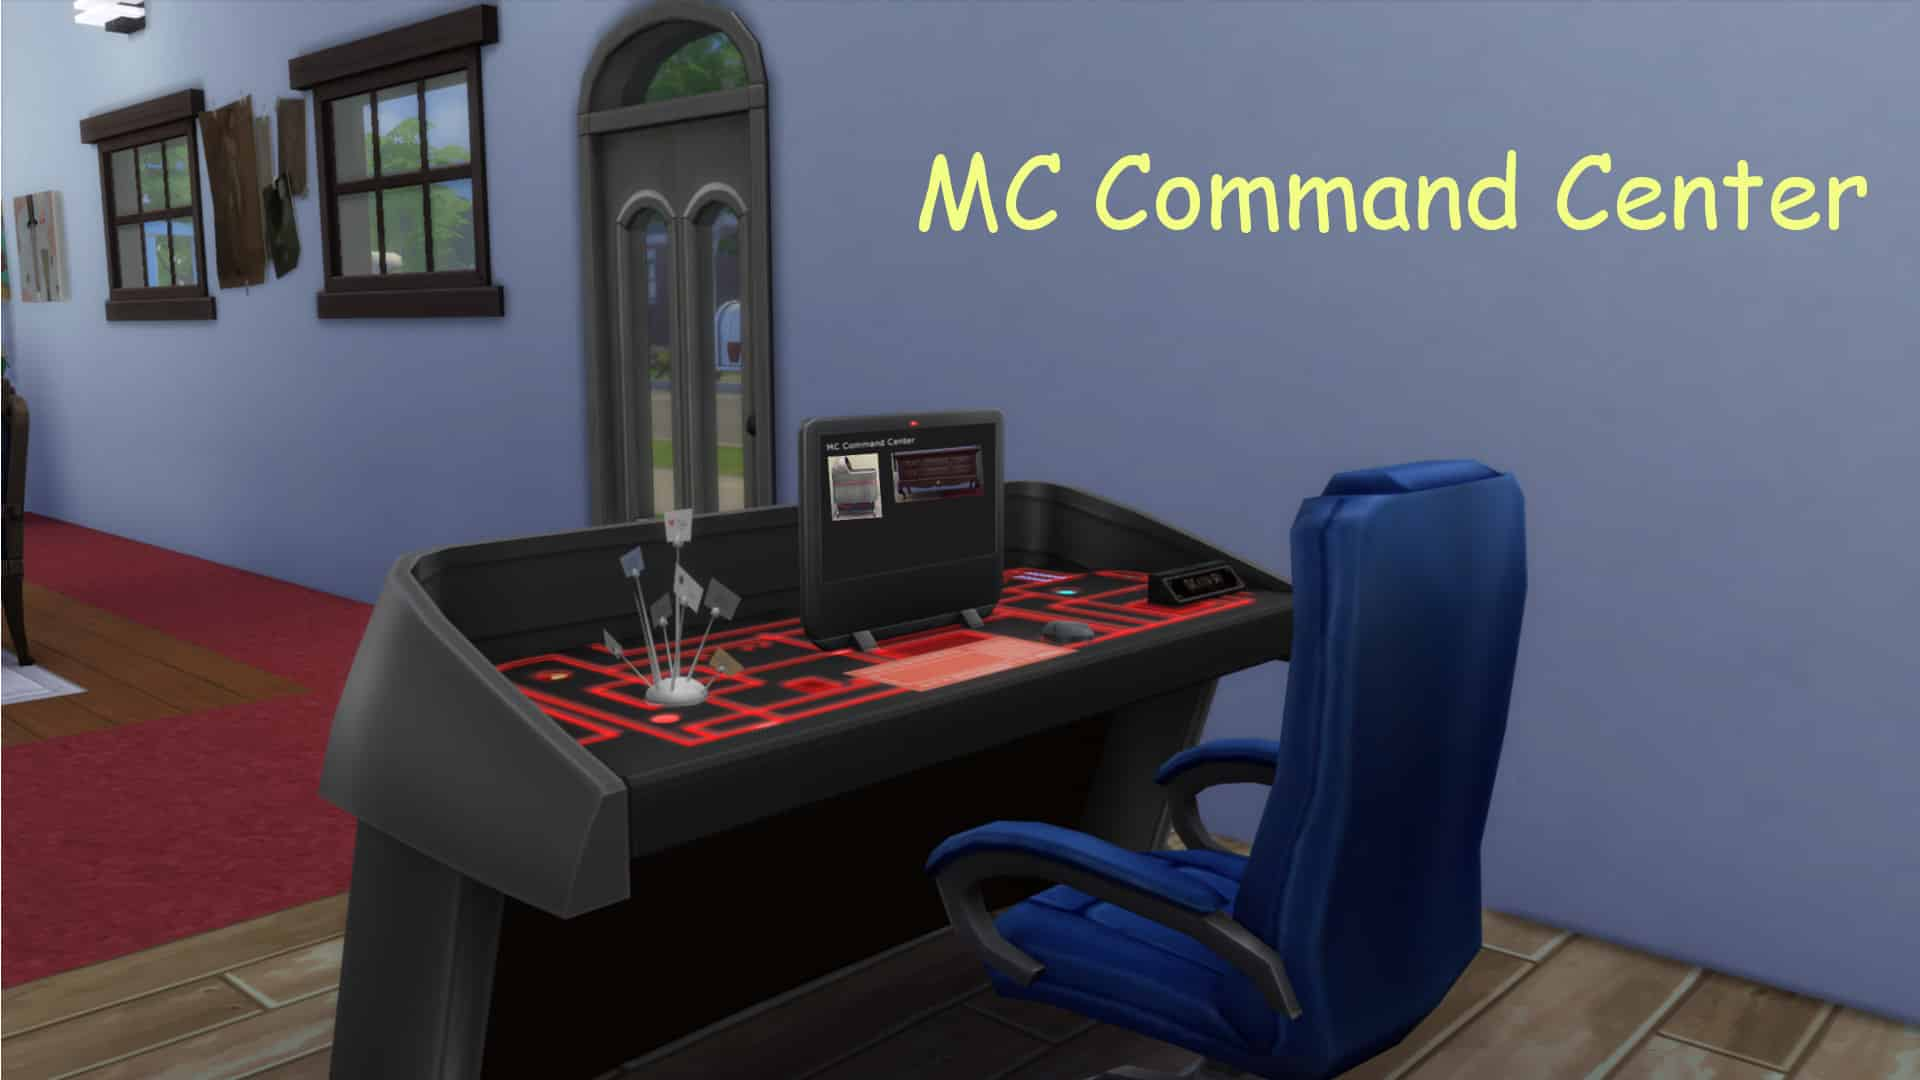 MC Command Center has been updated for the latest version of